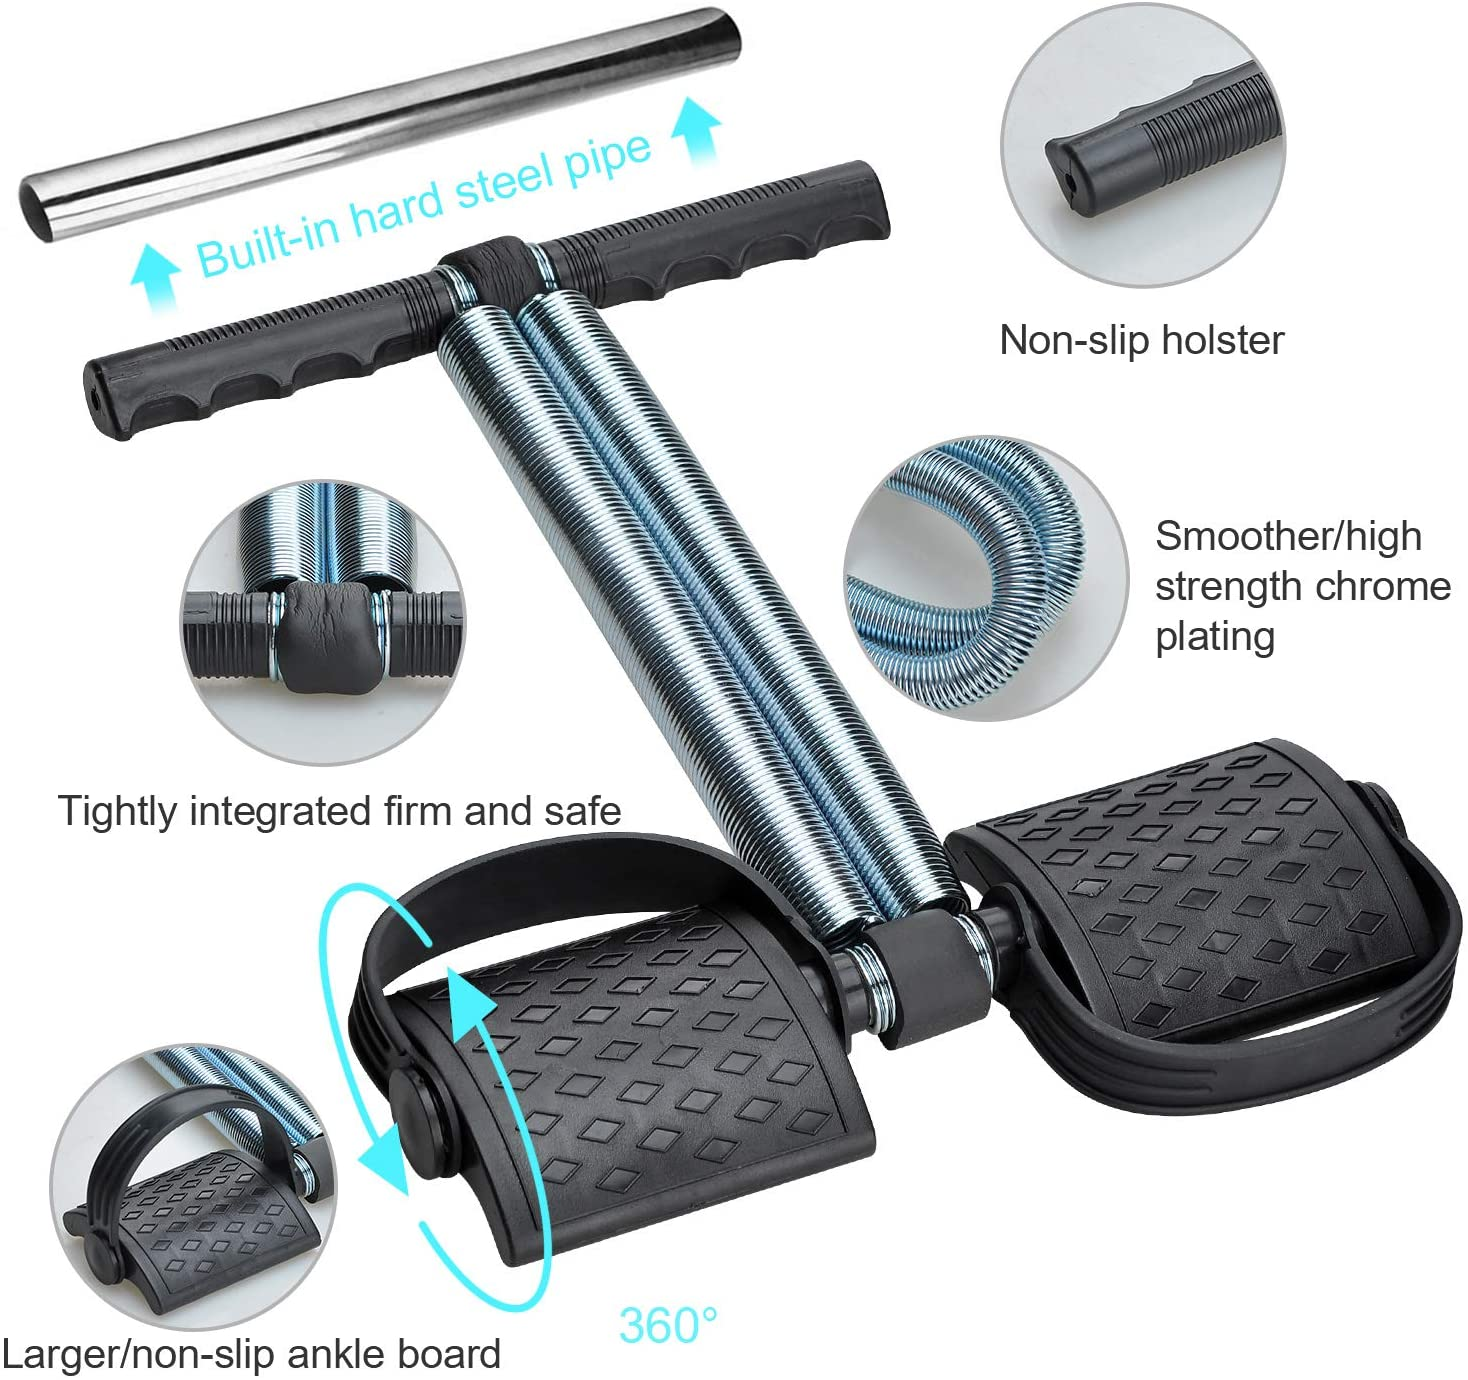 Most Effective Tummy Trimmer Double Spring of High-Quality Guaranteed Machine For Belly Fat Burner Best Belly Fat Exercise For Men And Women Good For Body Fitness | Weight Loss | Home Gym | Home Workout.